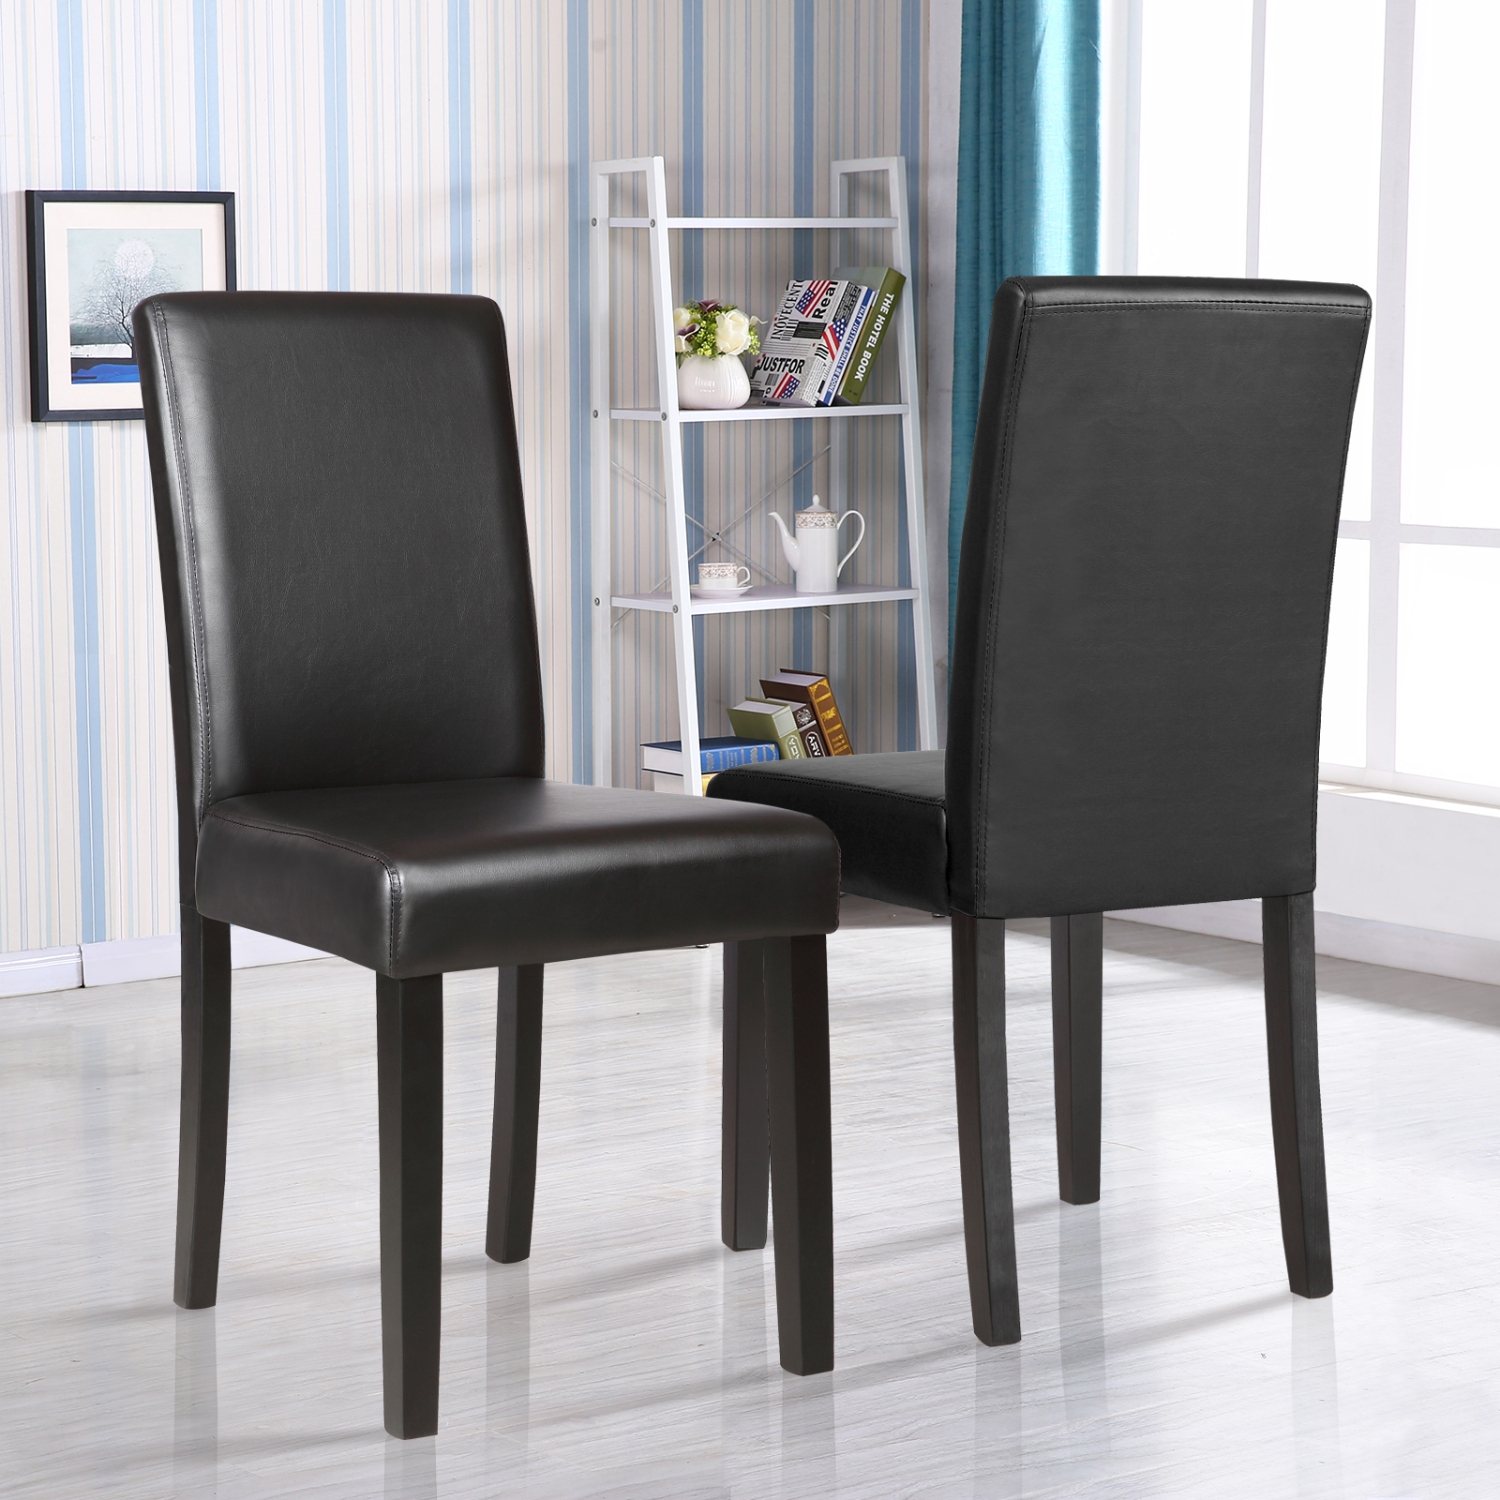 Black Dining Room Chair: Set Of 2 Kitchen Dinette Dining Room Chair Elegant Design